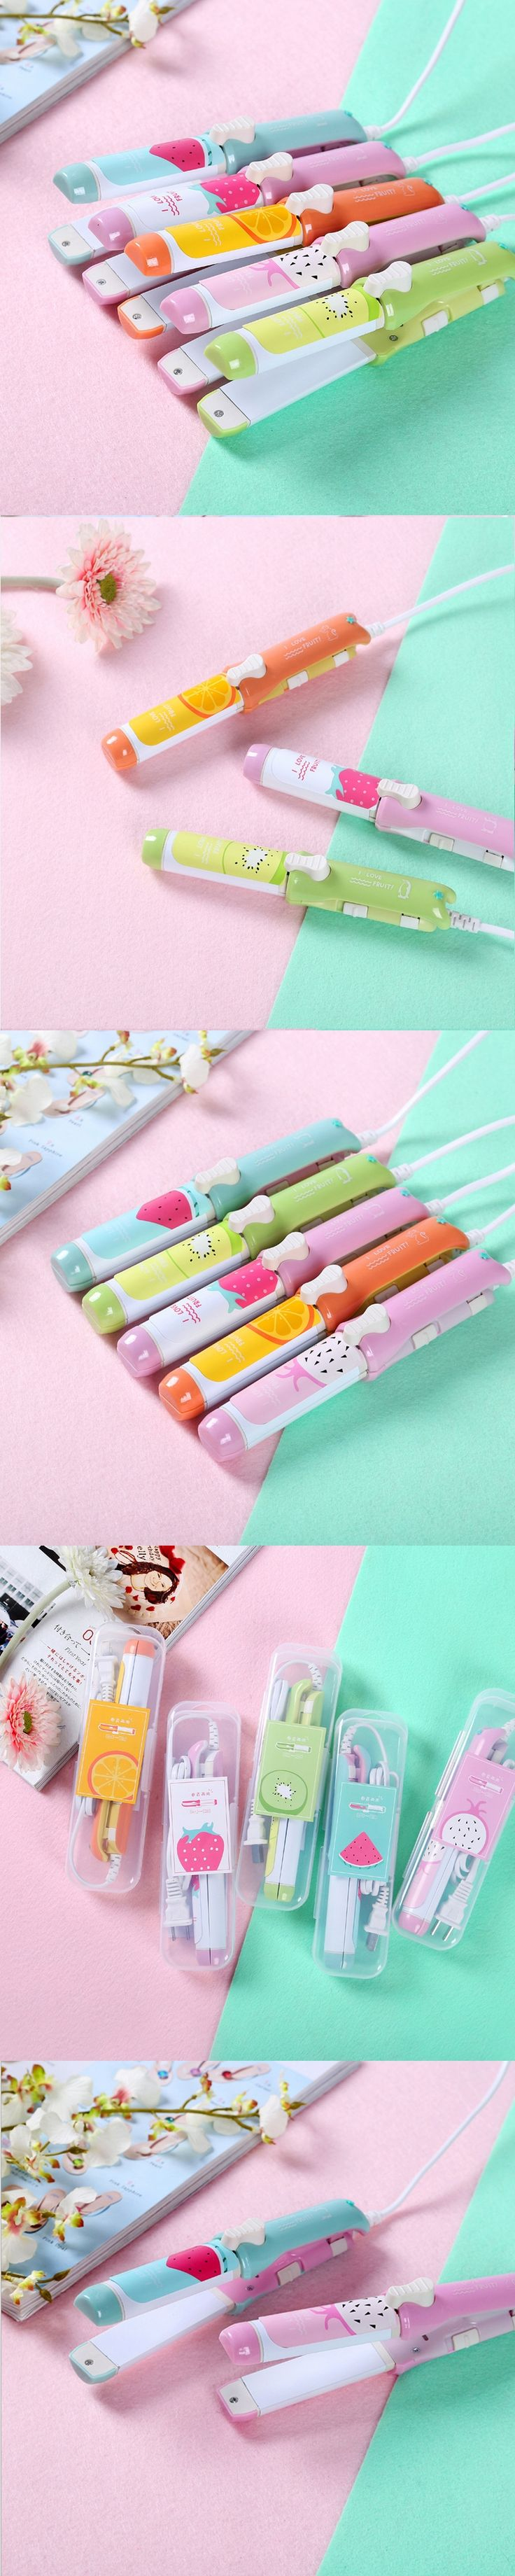 At Fashion hair curling irons 2 in 1 Travel Electric curling hair tools Cute 220V Mini Hair straightener and hair curler